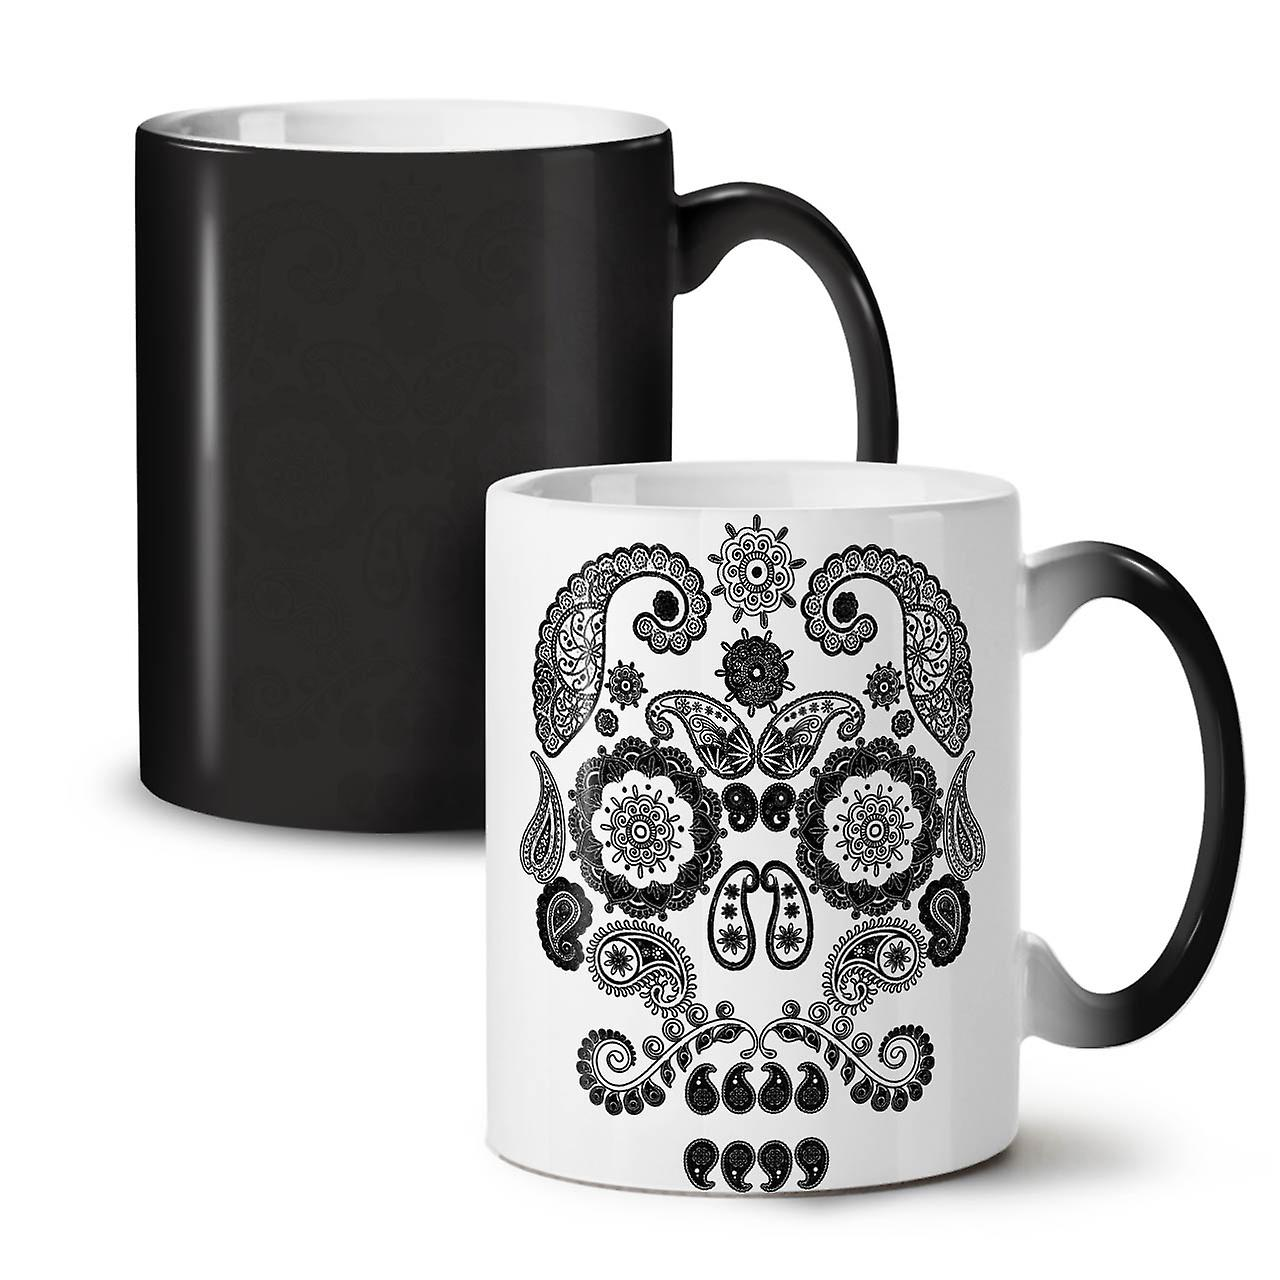 OzWellcoda New Coffee The Colour 11 Mug Black Face Ceramic Skull Of Changing Tea pSzUMVq